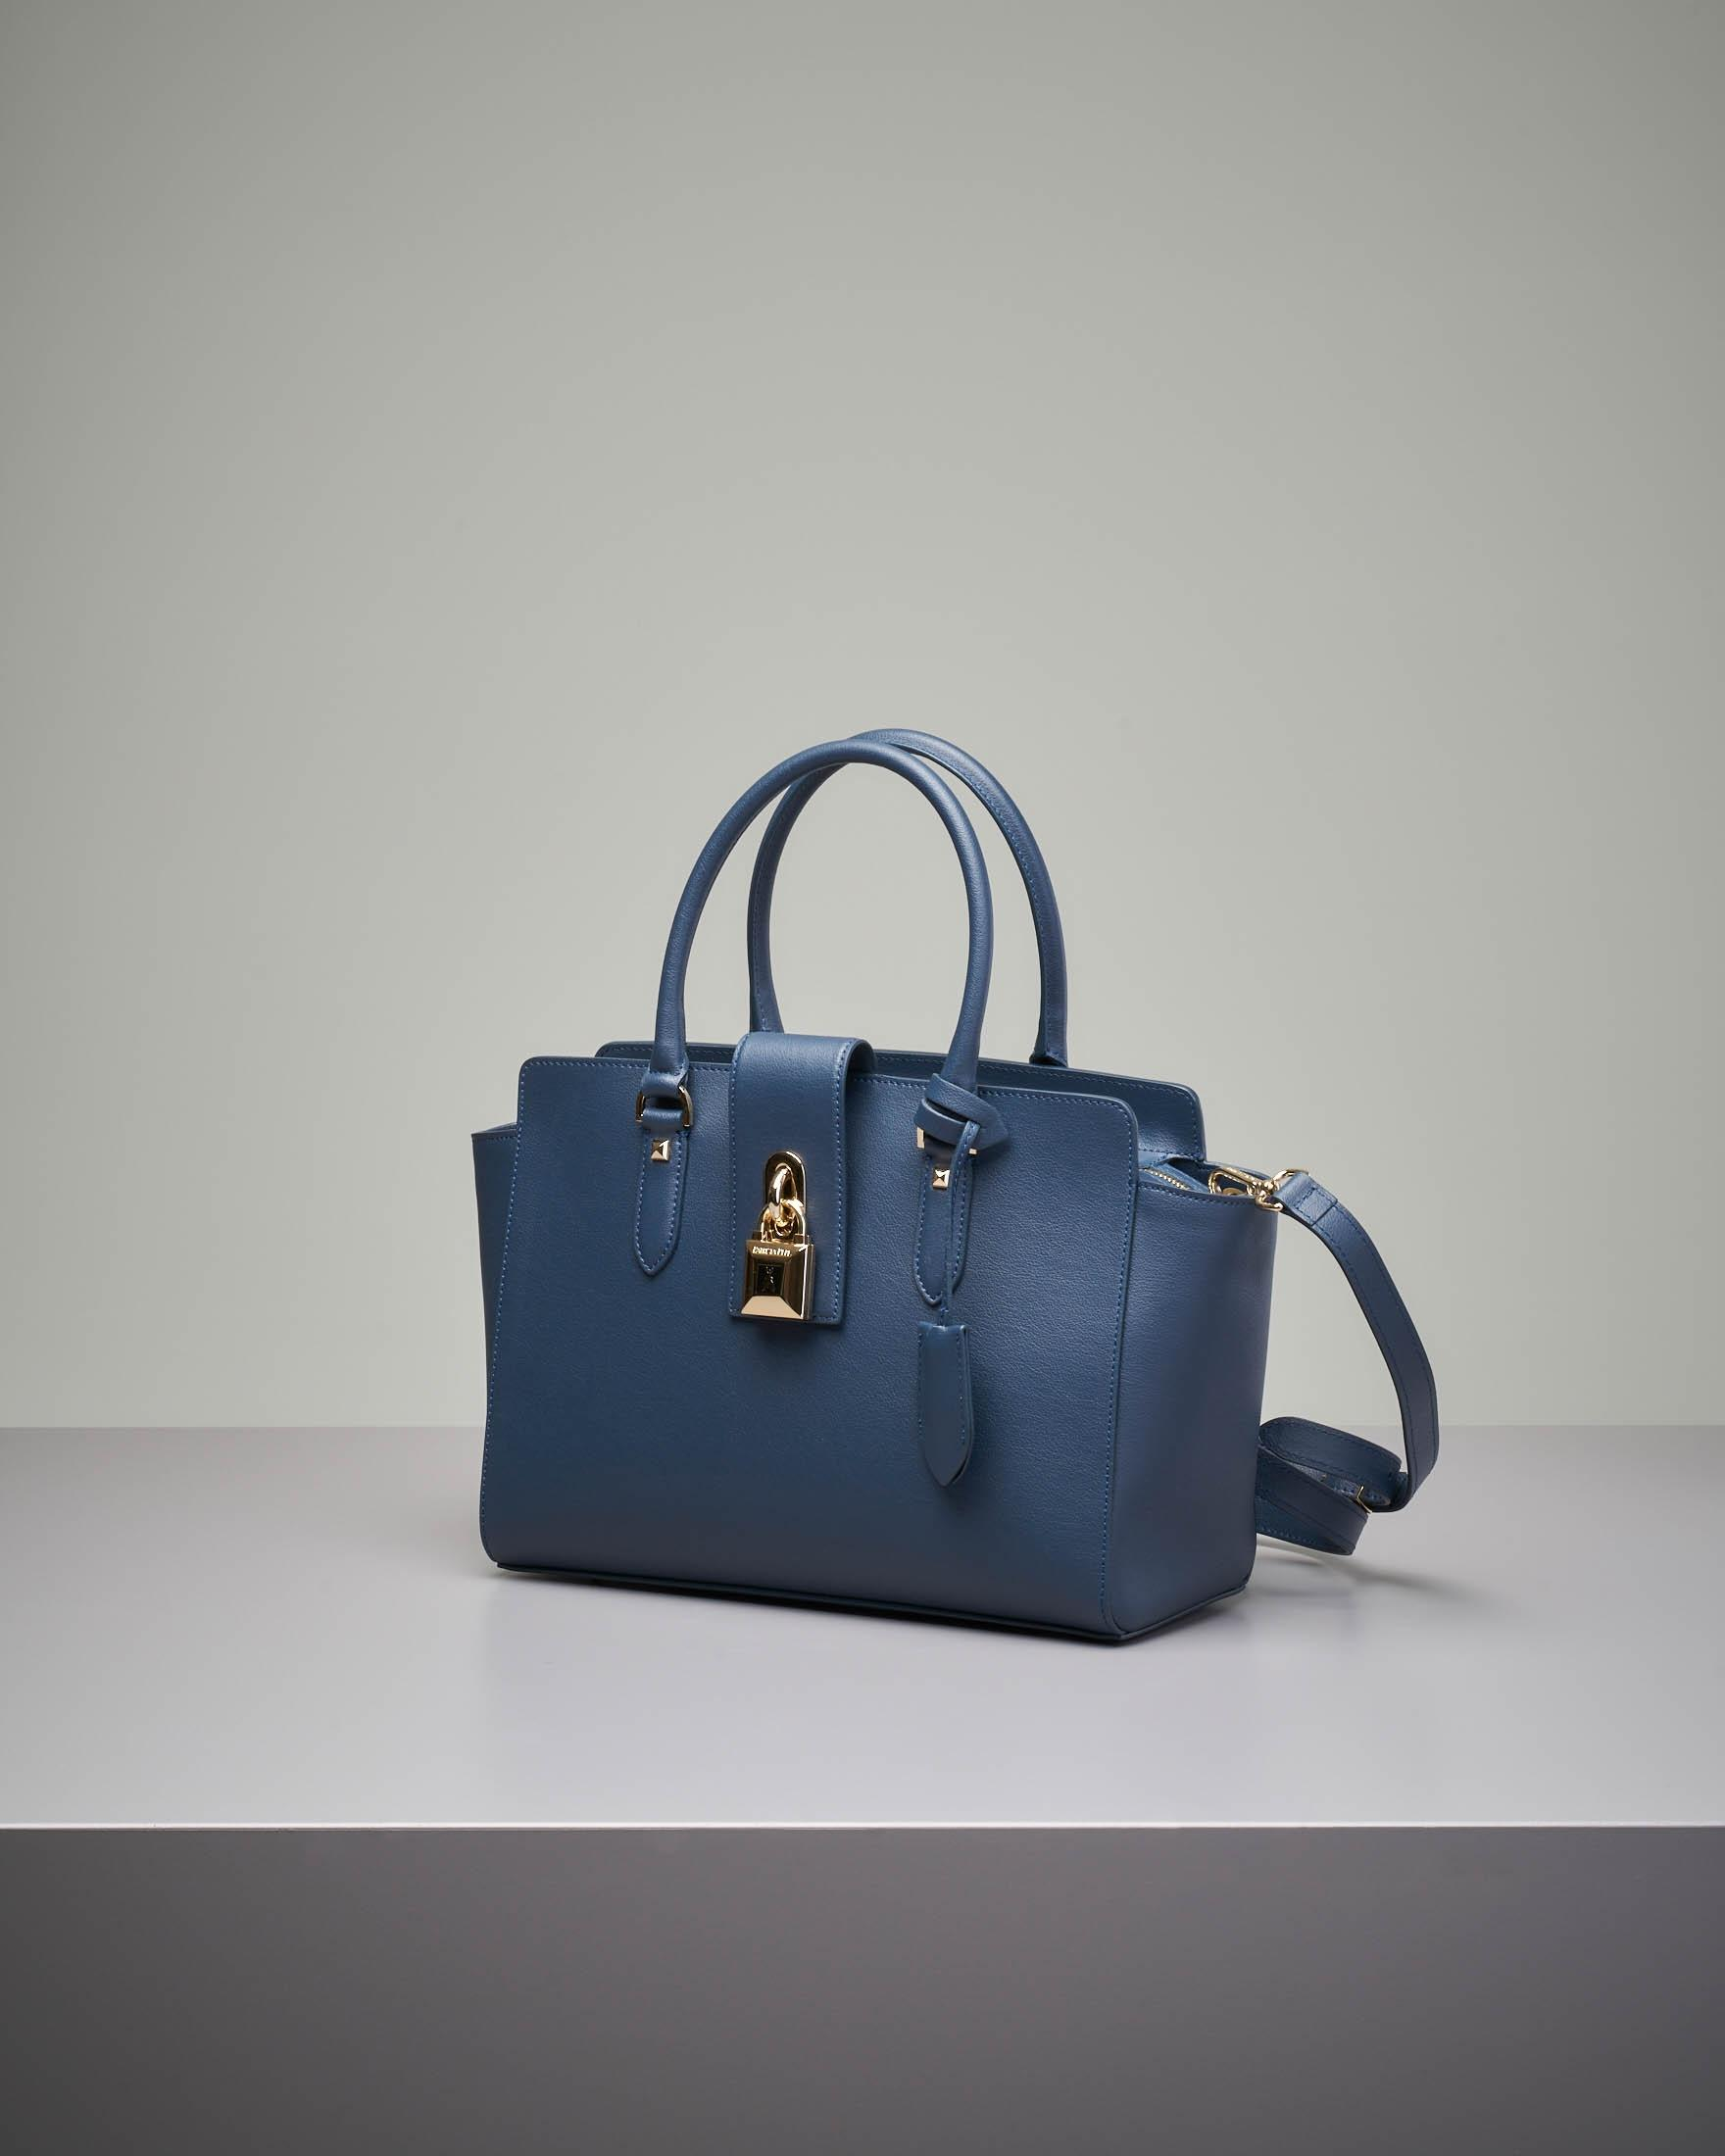 Bauletto rigido in pelle blu